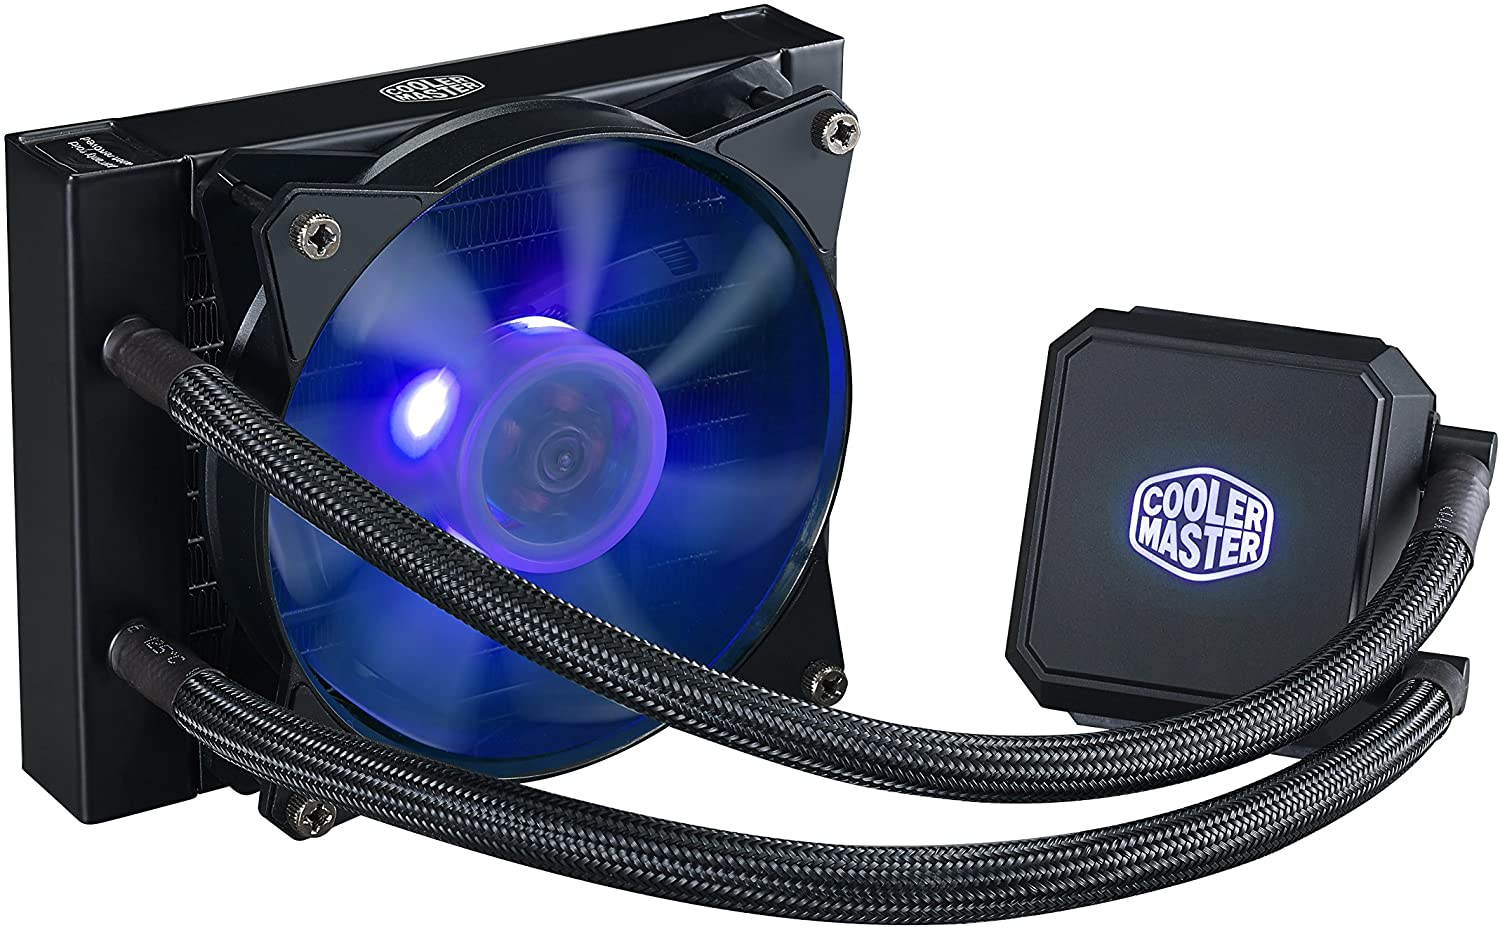 Cooler Master MasterLiquid LC120E RGB Close-Loop AIO CPU Liquid Cooler, 120mm Radiator, Dual Chamber RGB Pump, Dual MF120R RGB Fans w/ RGB Lighting Sync for AMD Ryzen/Intel1151/2066